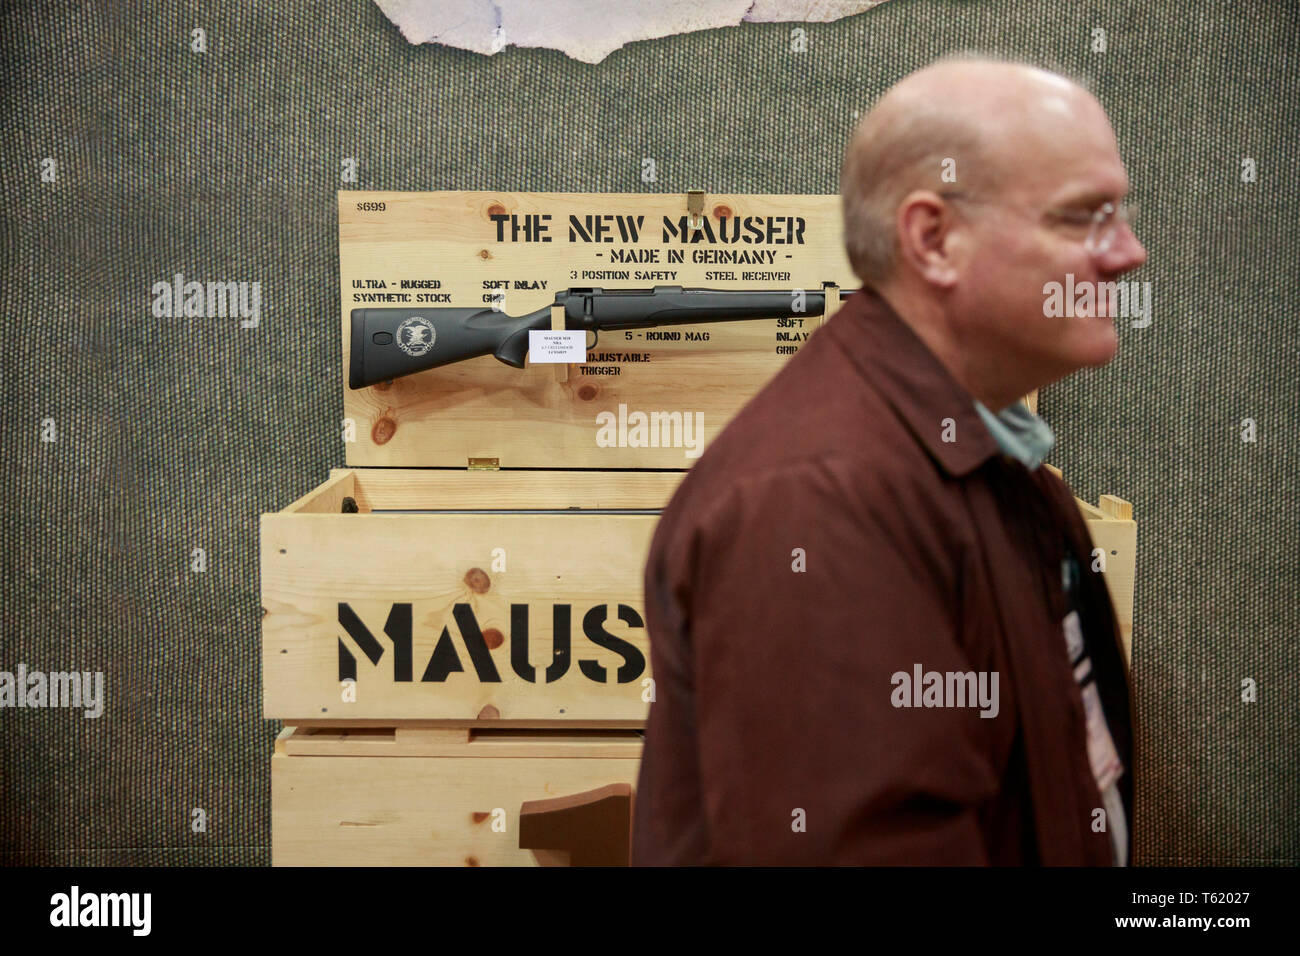 Mauser Gun Stock Photos & Mauser Gun Stock Images - Alamy